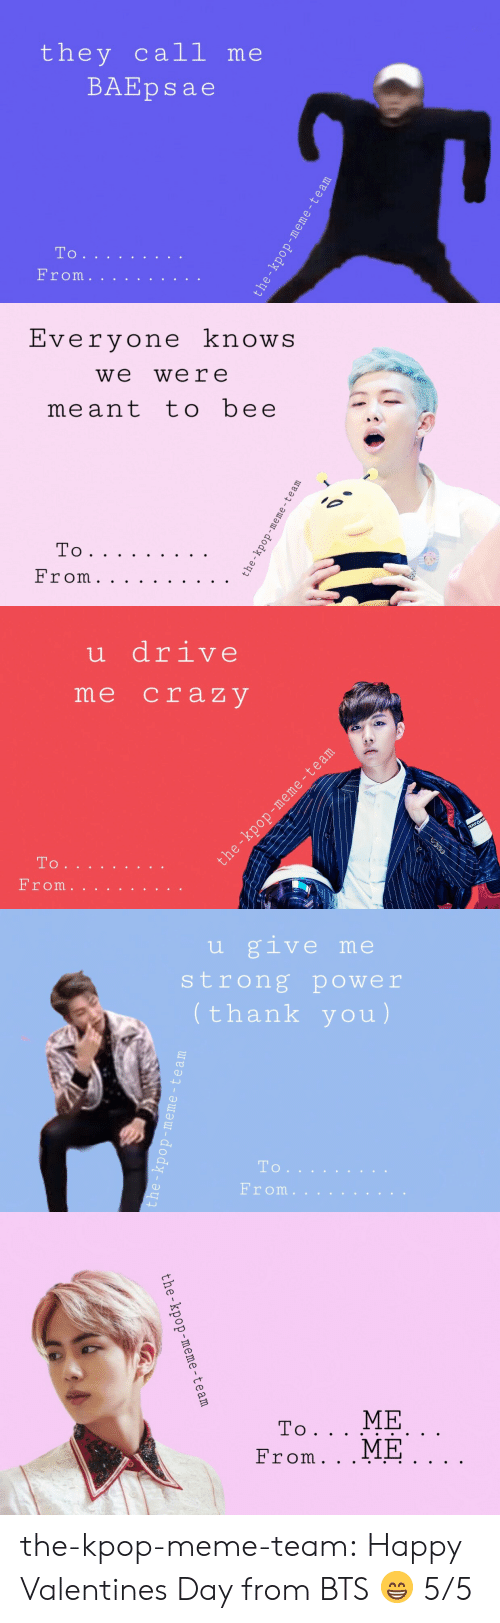 Meme, Tumblr, and Valentine's Day: they call me  BAEpsae  To   Evervone knowS  we were  meant tobee   u drive  me craz V  то .   u give me  strong power  thank you)  To  From.   the-kpop-meme-team the-kpop-meme-team:  Happy Valentines Day from BTS 😁 5/5